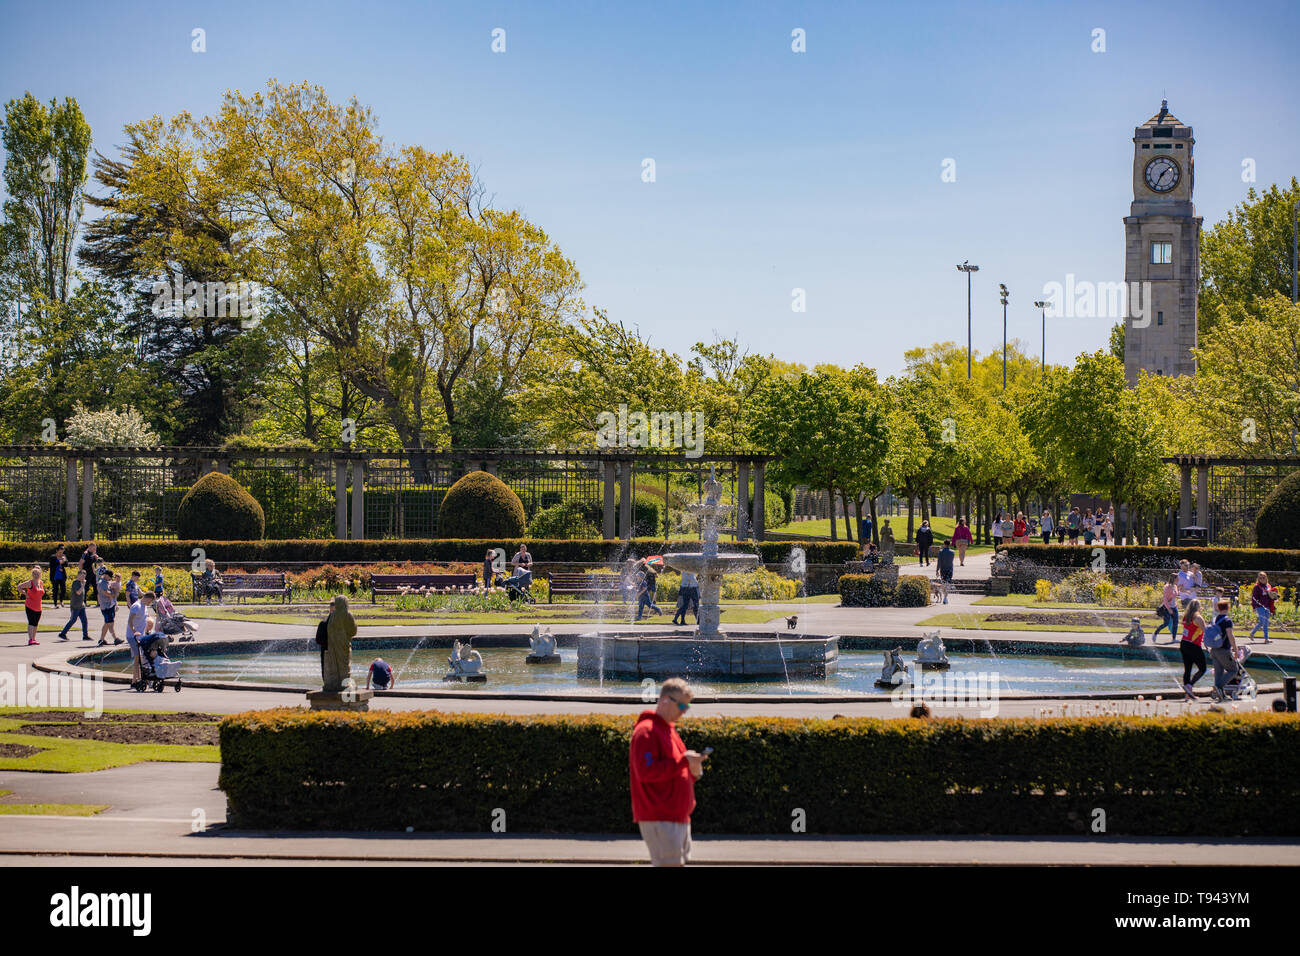 Stanley Park, Blackpool, Lancashire. 12th May 2019. The Italian Gardens in Stanley Park, Blackpool. Credit: Craig Searle Stock Photo